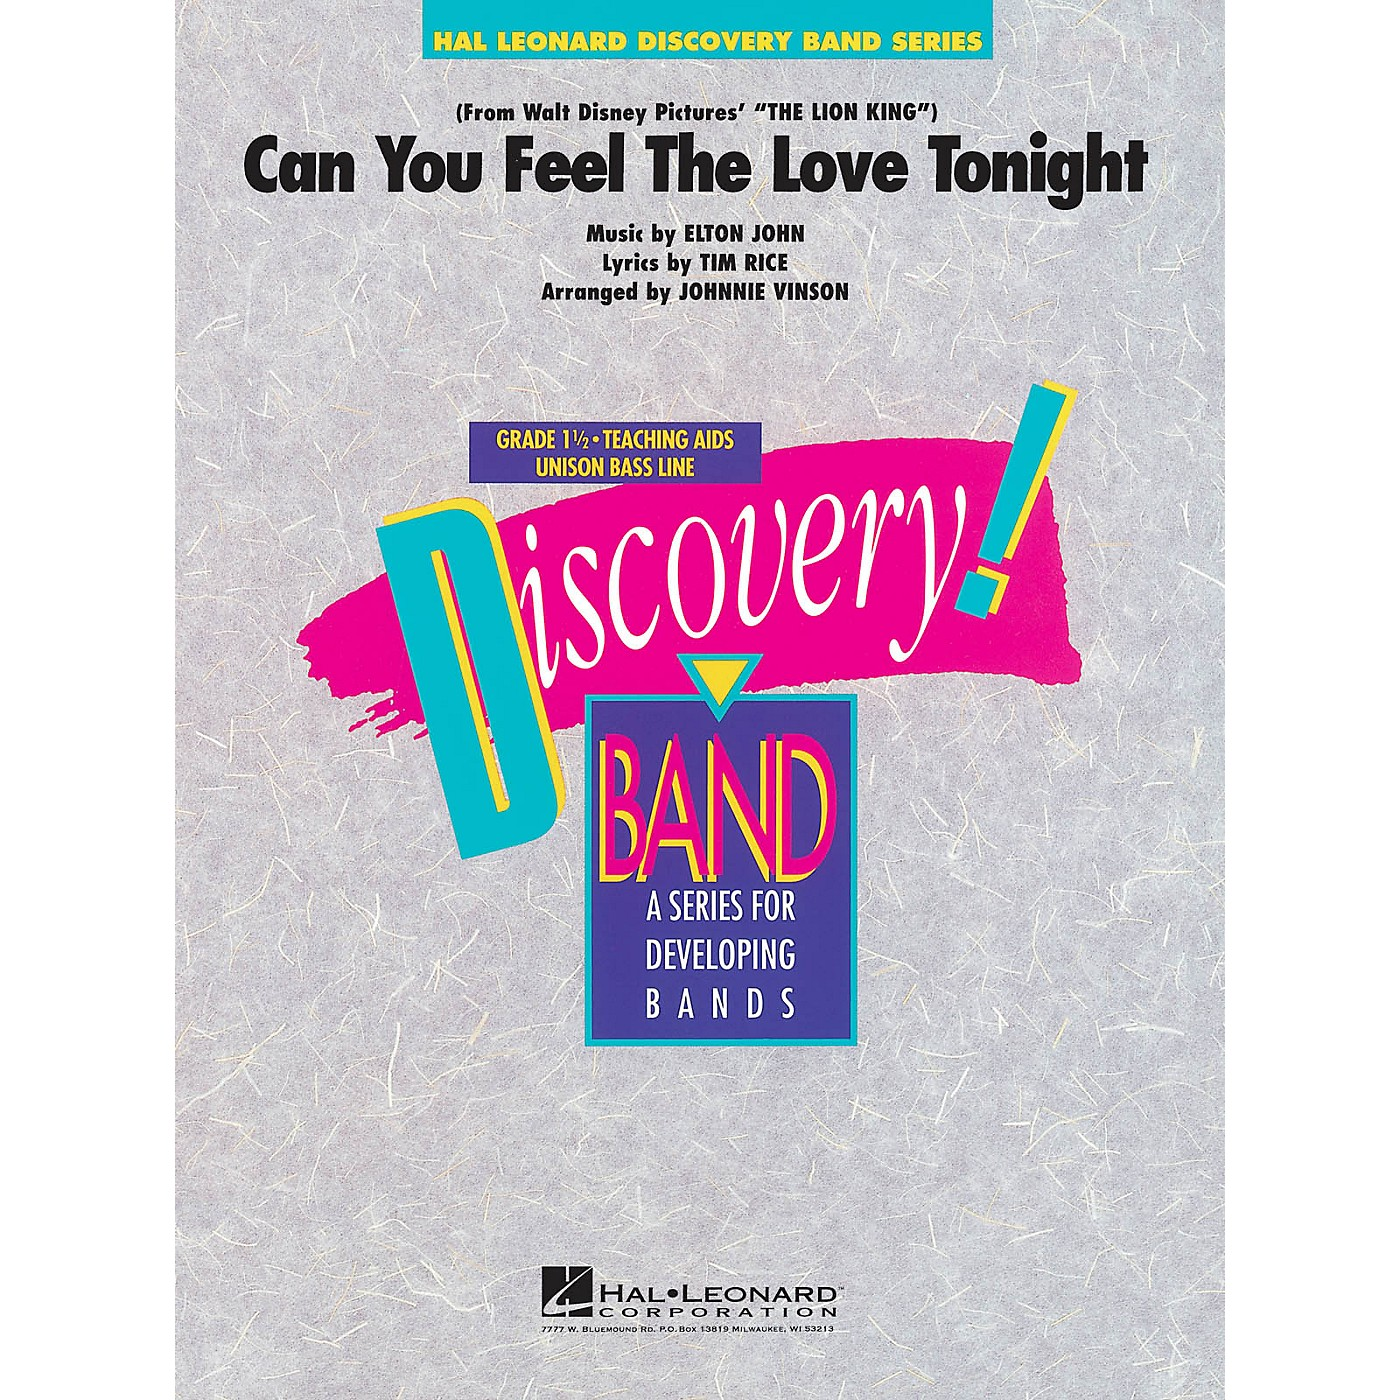 Hal Leonard Can You Feel the Love Tonight Concert Band Level 1.5 Arranged by Johnnie Vinson thumbnail